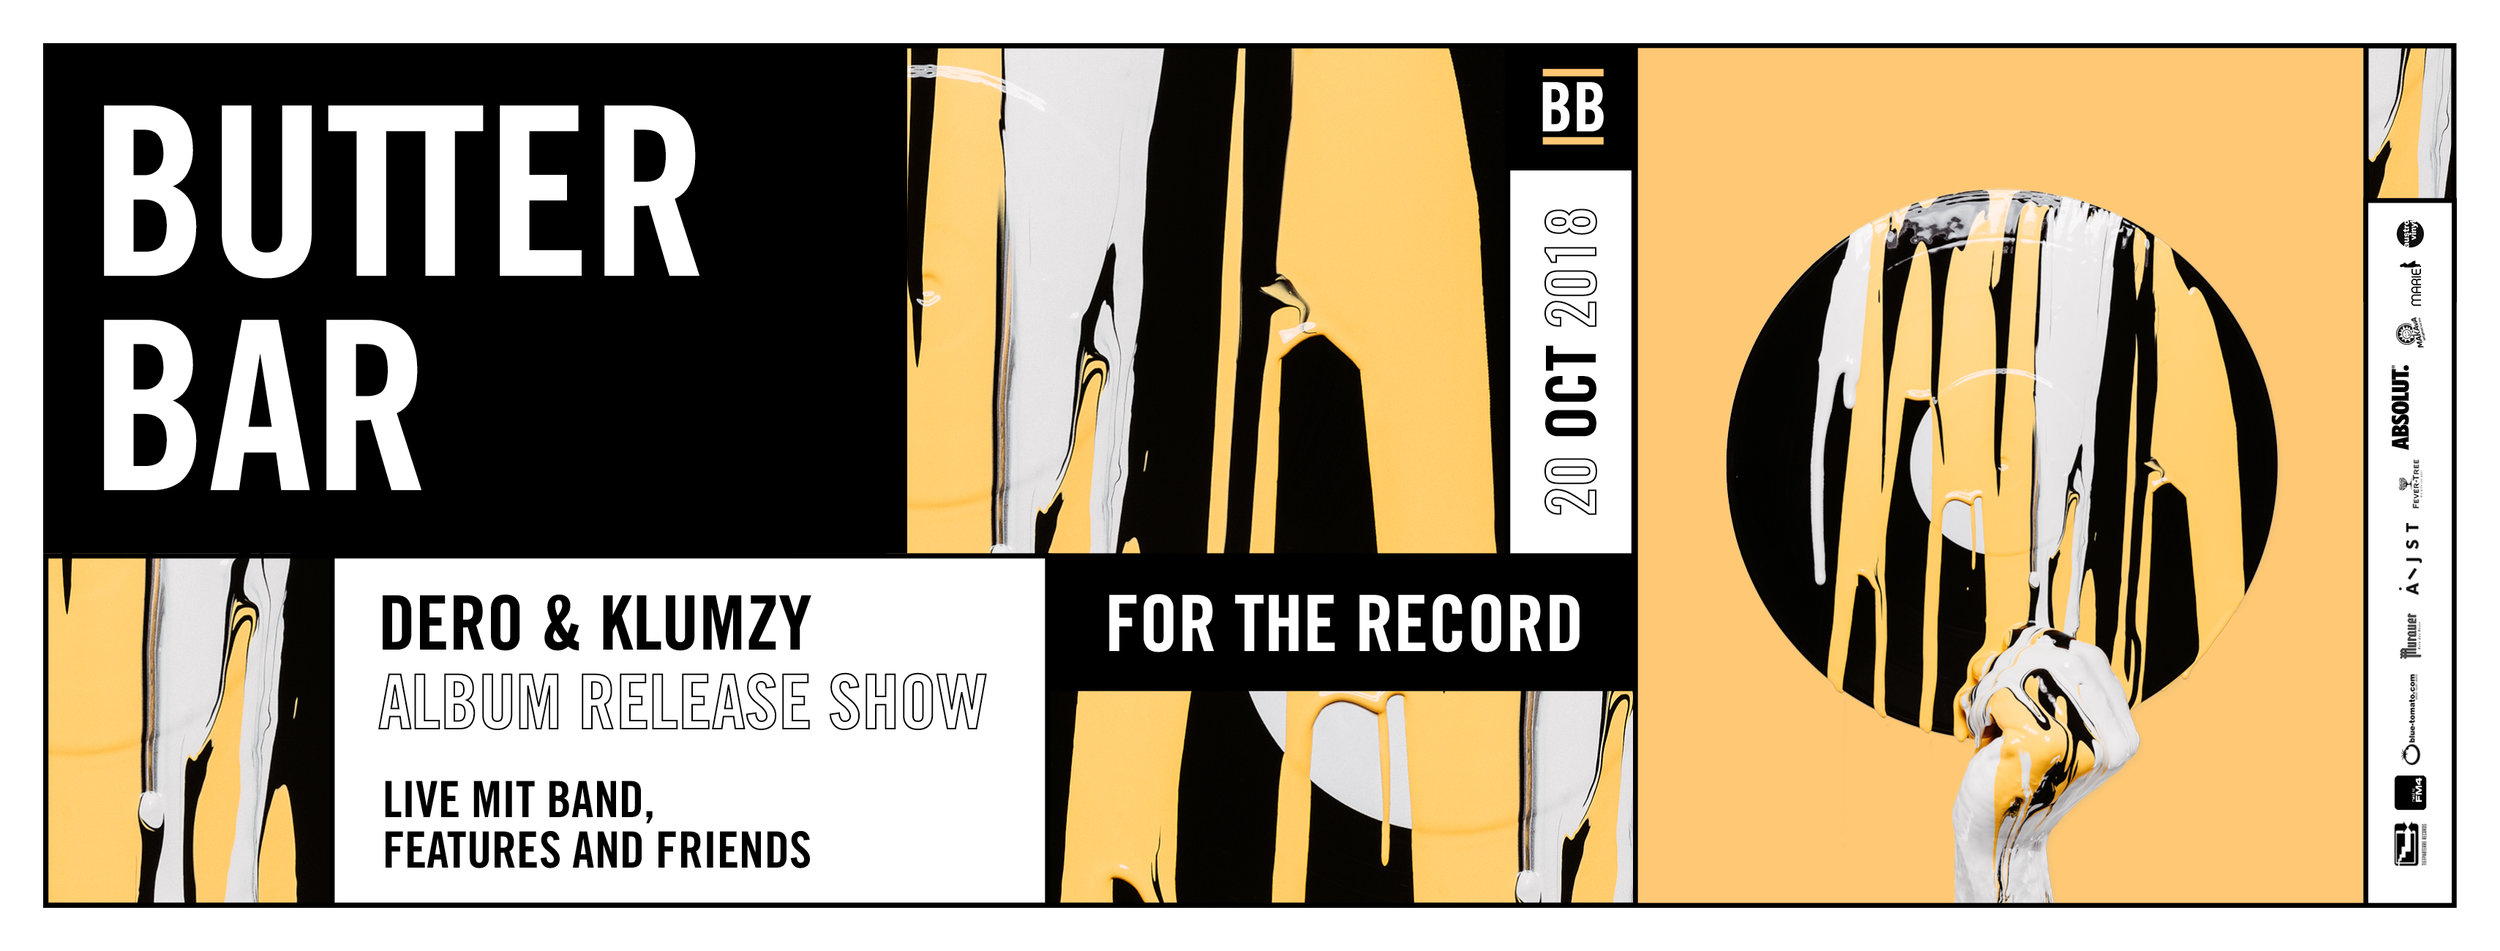 BUTTERBAR - FOR THE RECORD - Flyer_front